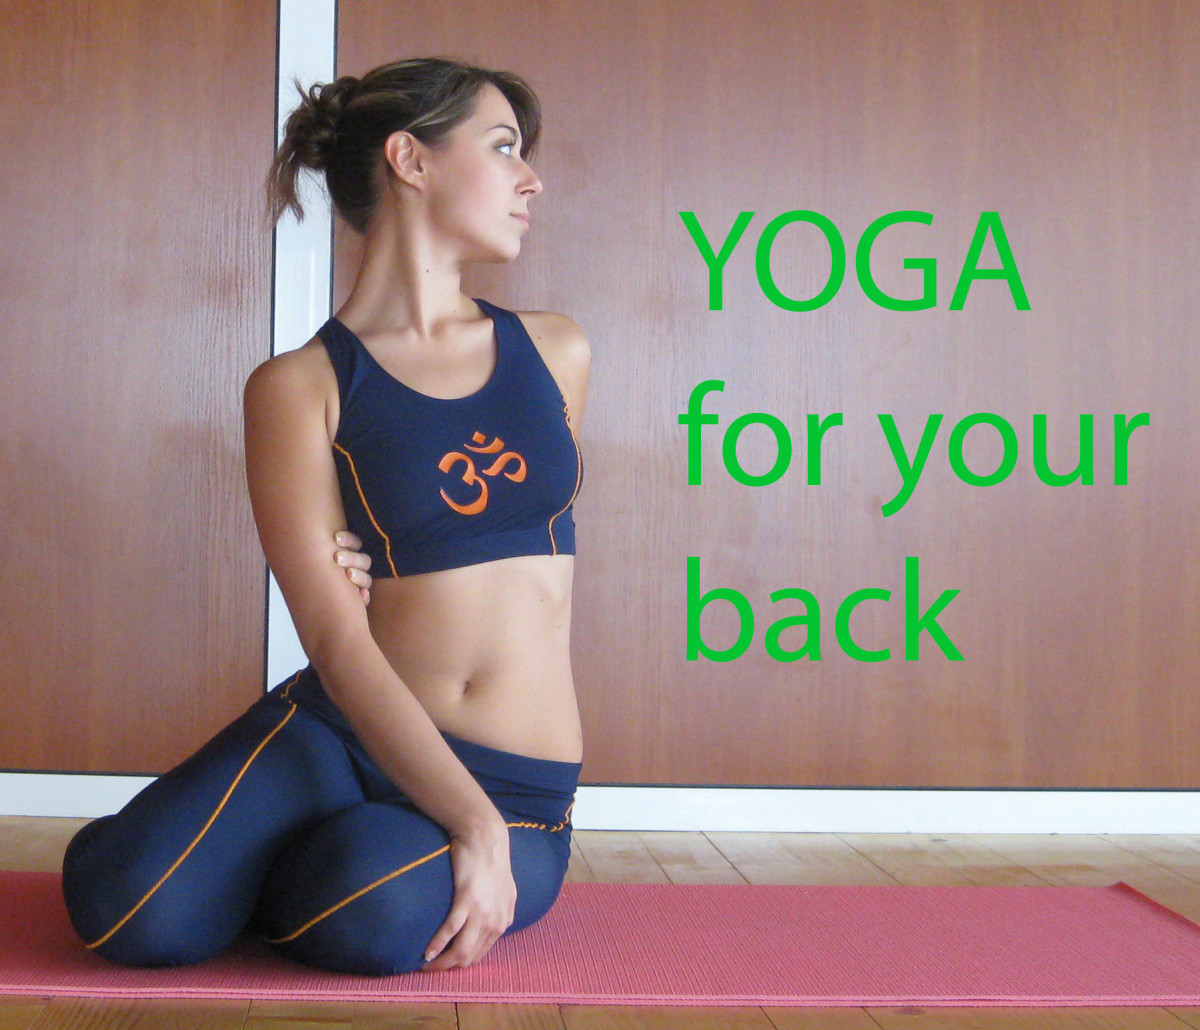 How to Relieve Lower Back Pain With Yoga